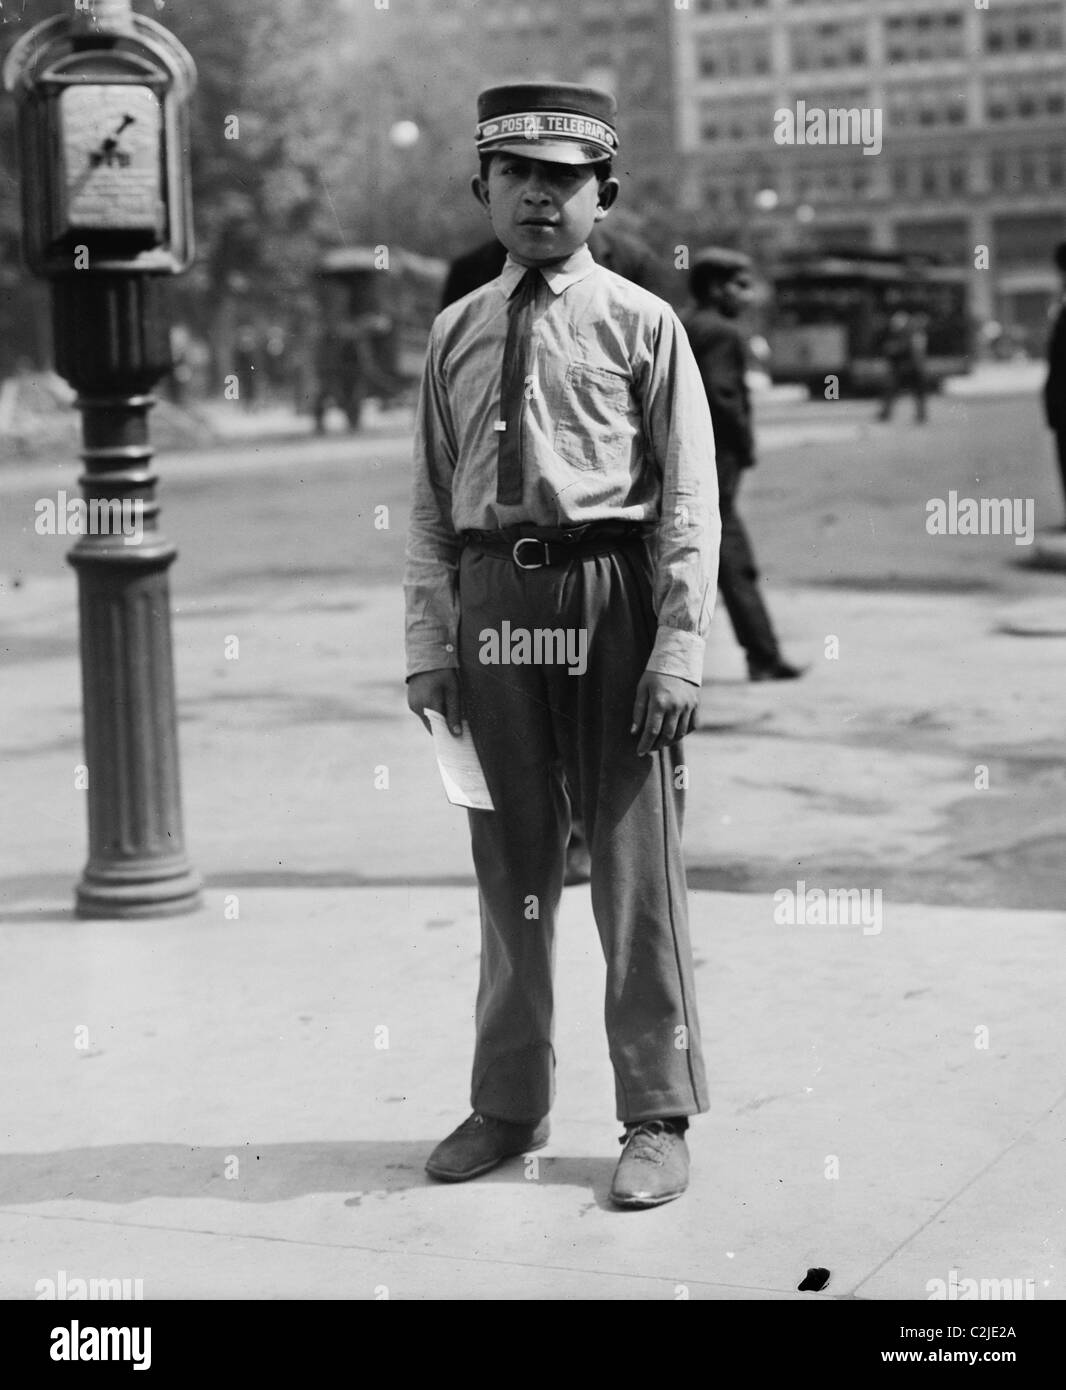 Postal Telegraph Company Summer Uniform - Stock Image